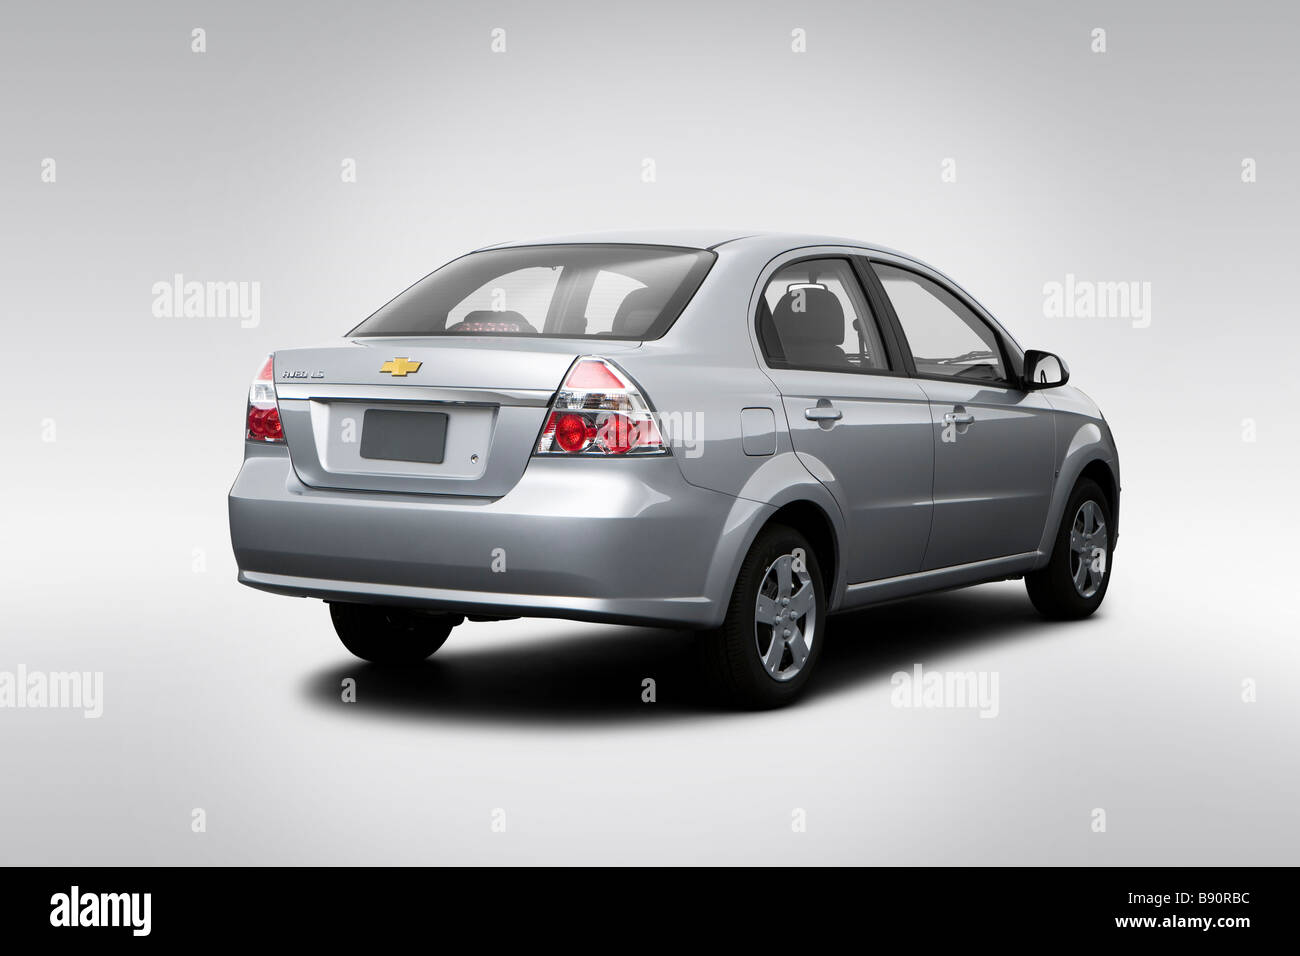 2009 Chevrolet Aveo Ls In Silver Rear Angle View Stock Photo Alamy